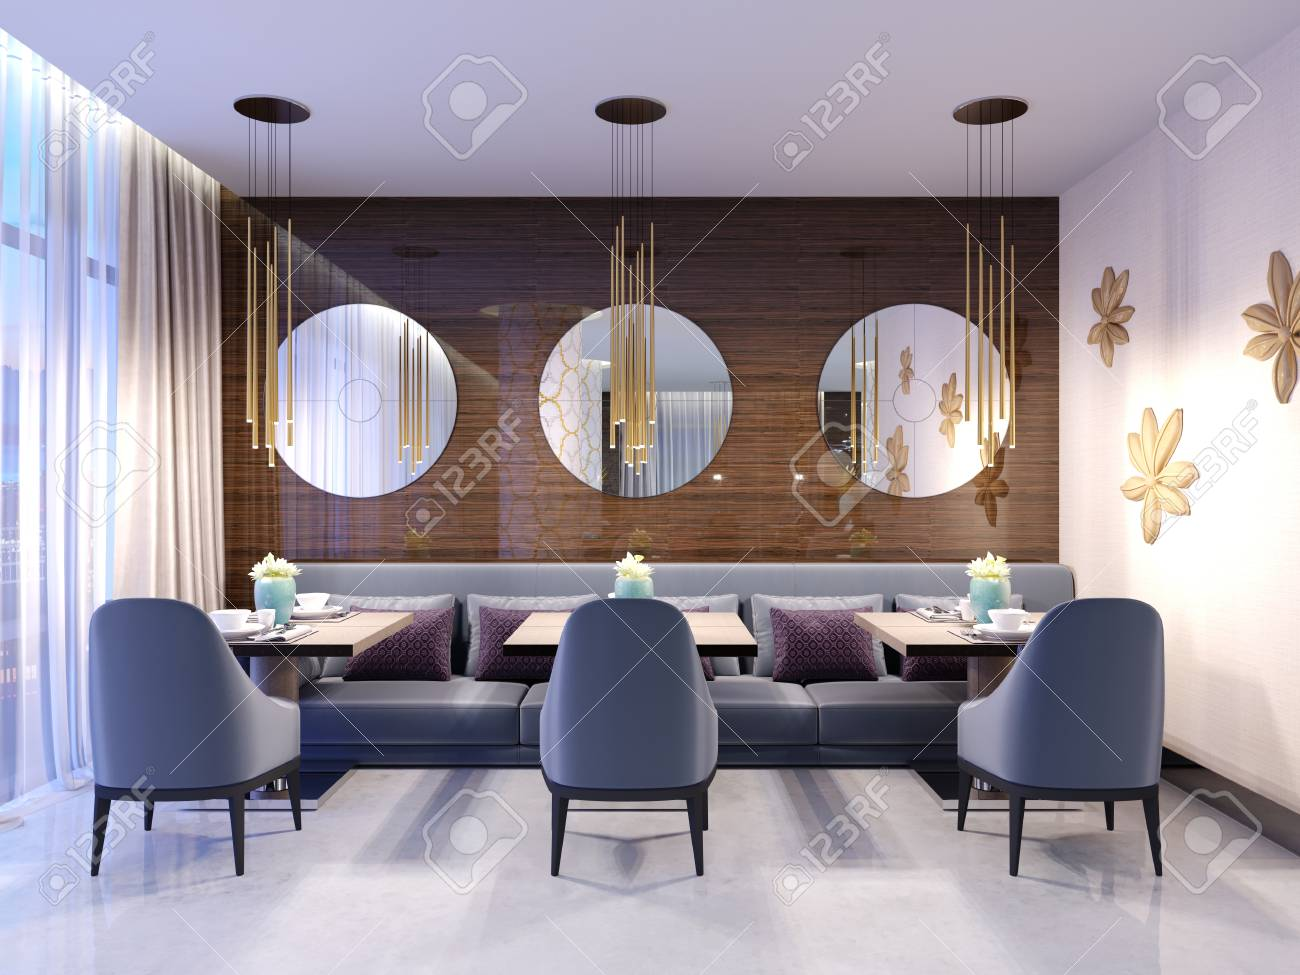 Swell Modern Restaurant With Wooden Decorative Wall And Round Mirrors Download Free Architecture Designs Lukepmadebymaigaardcom